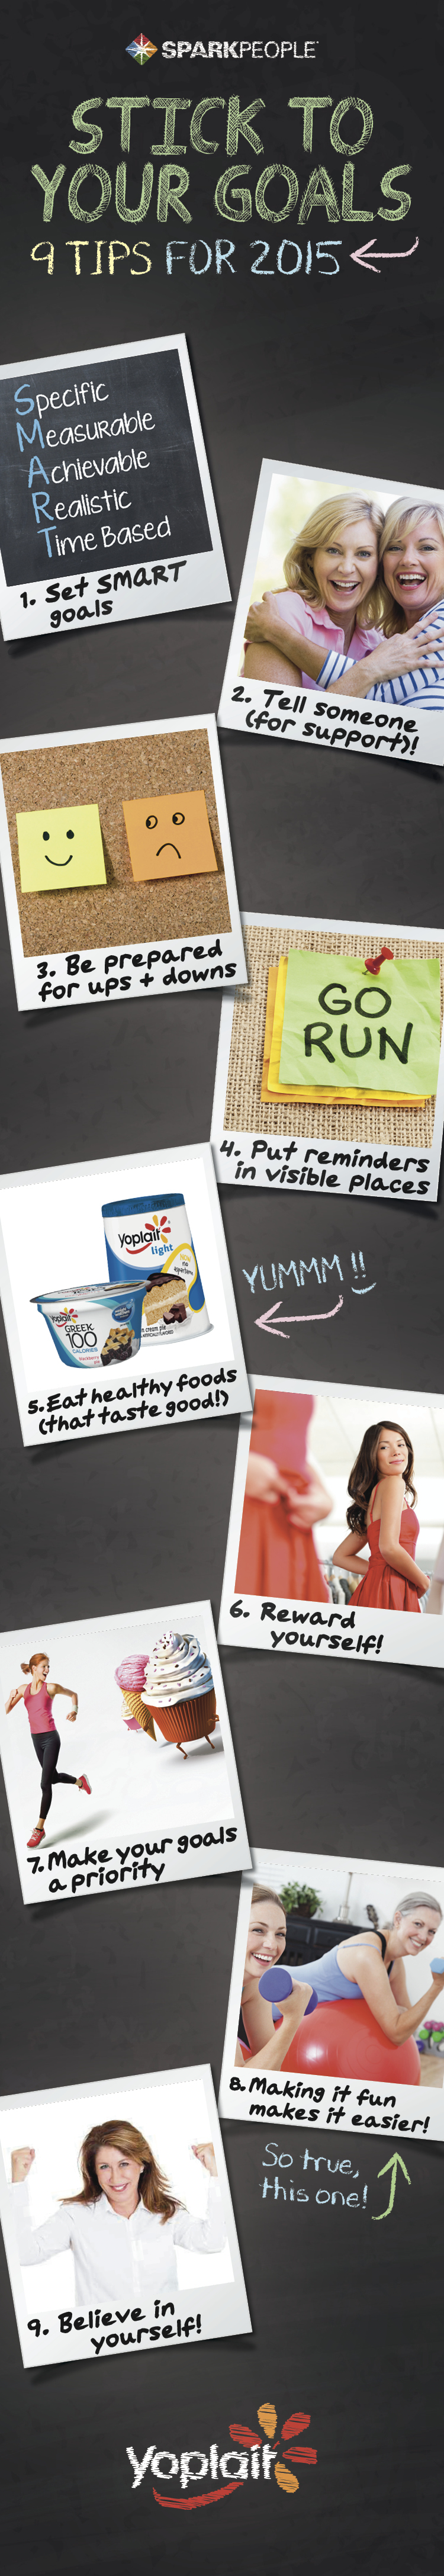 How to motivate yourself  Yoplait%20goals%20infographic%201.15